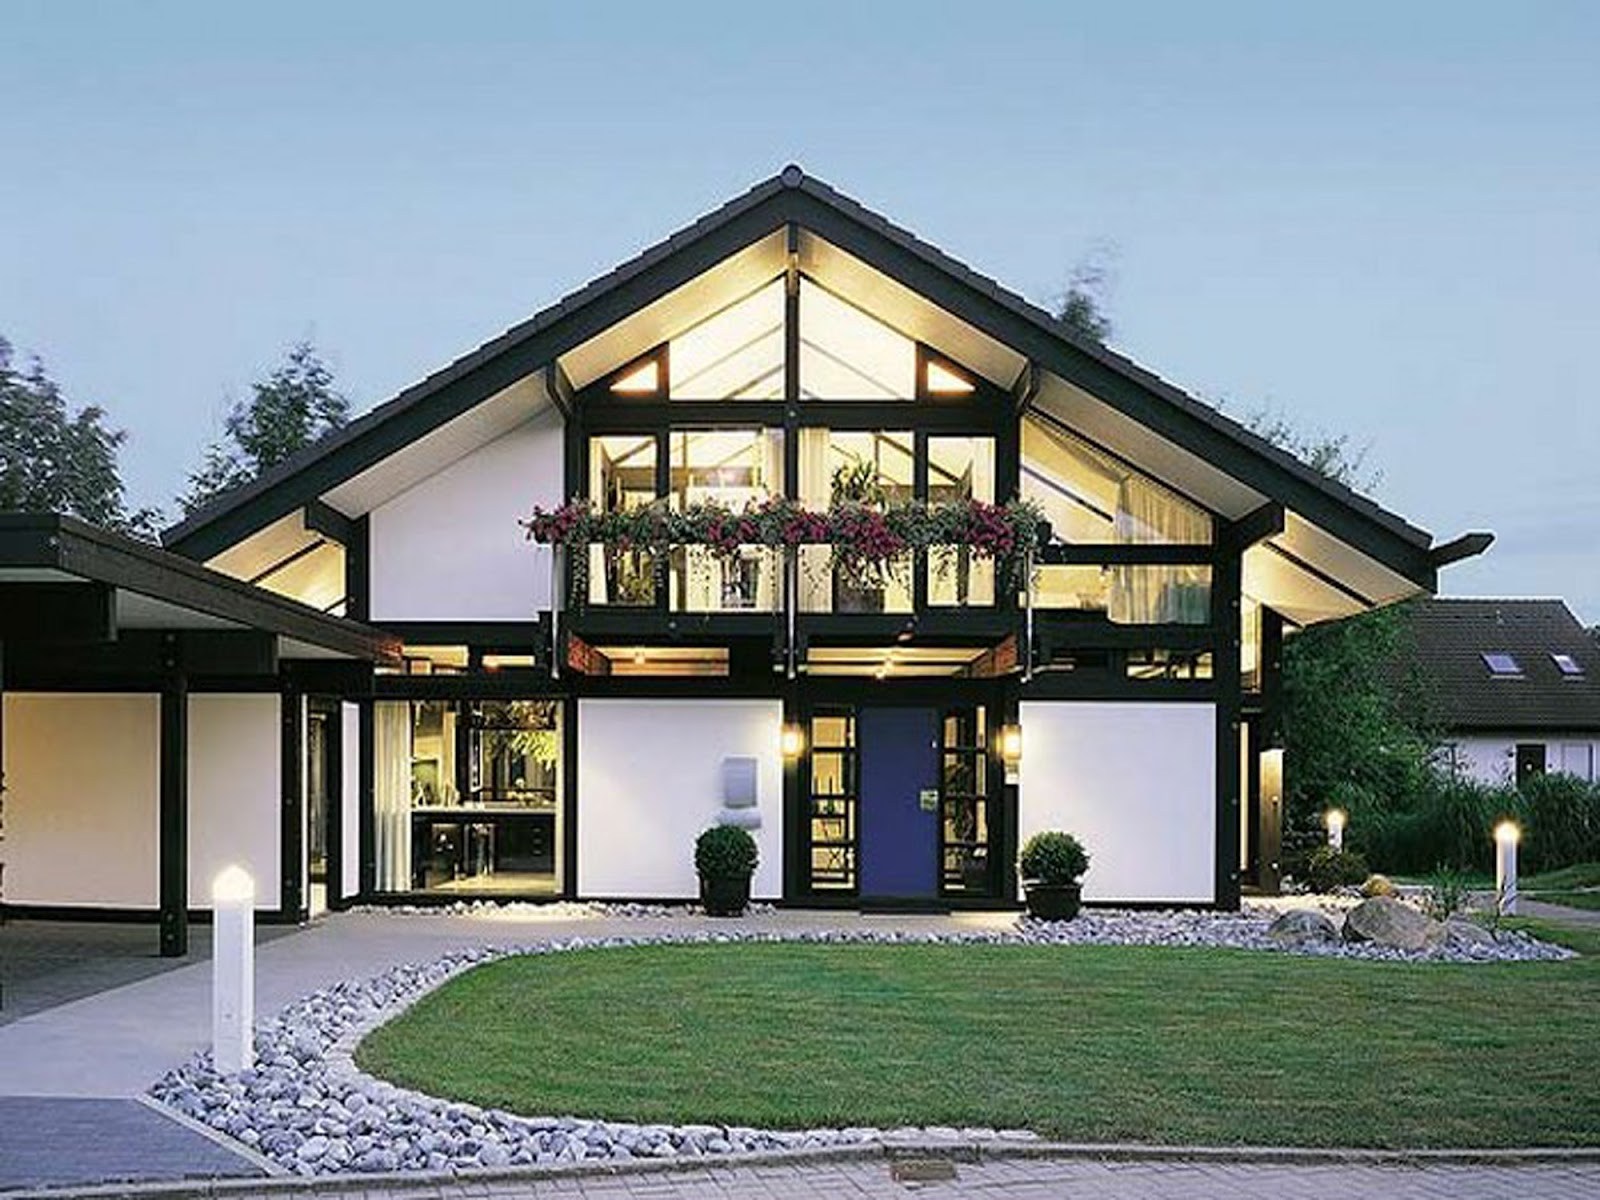 New home designs latest beautiful latest modern home designs - Latest design modern houses ...